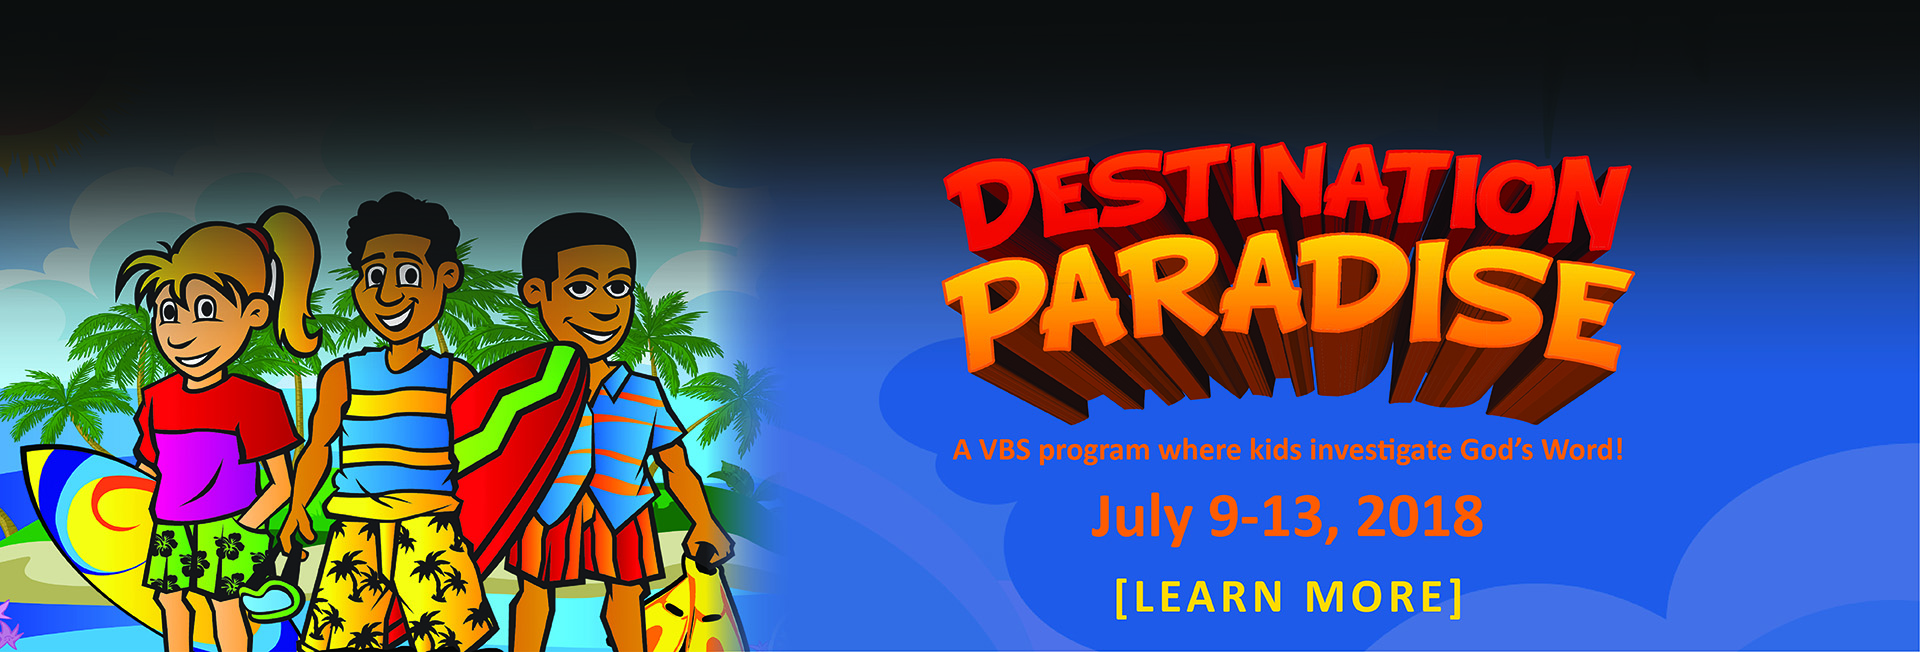 VBS starts on July 9-13 from 6:30 to 8 PM